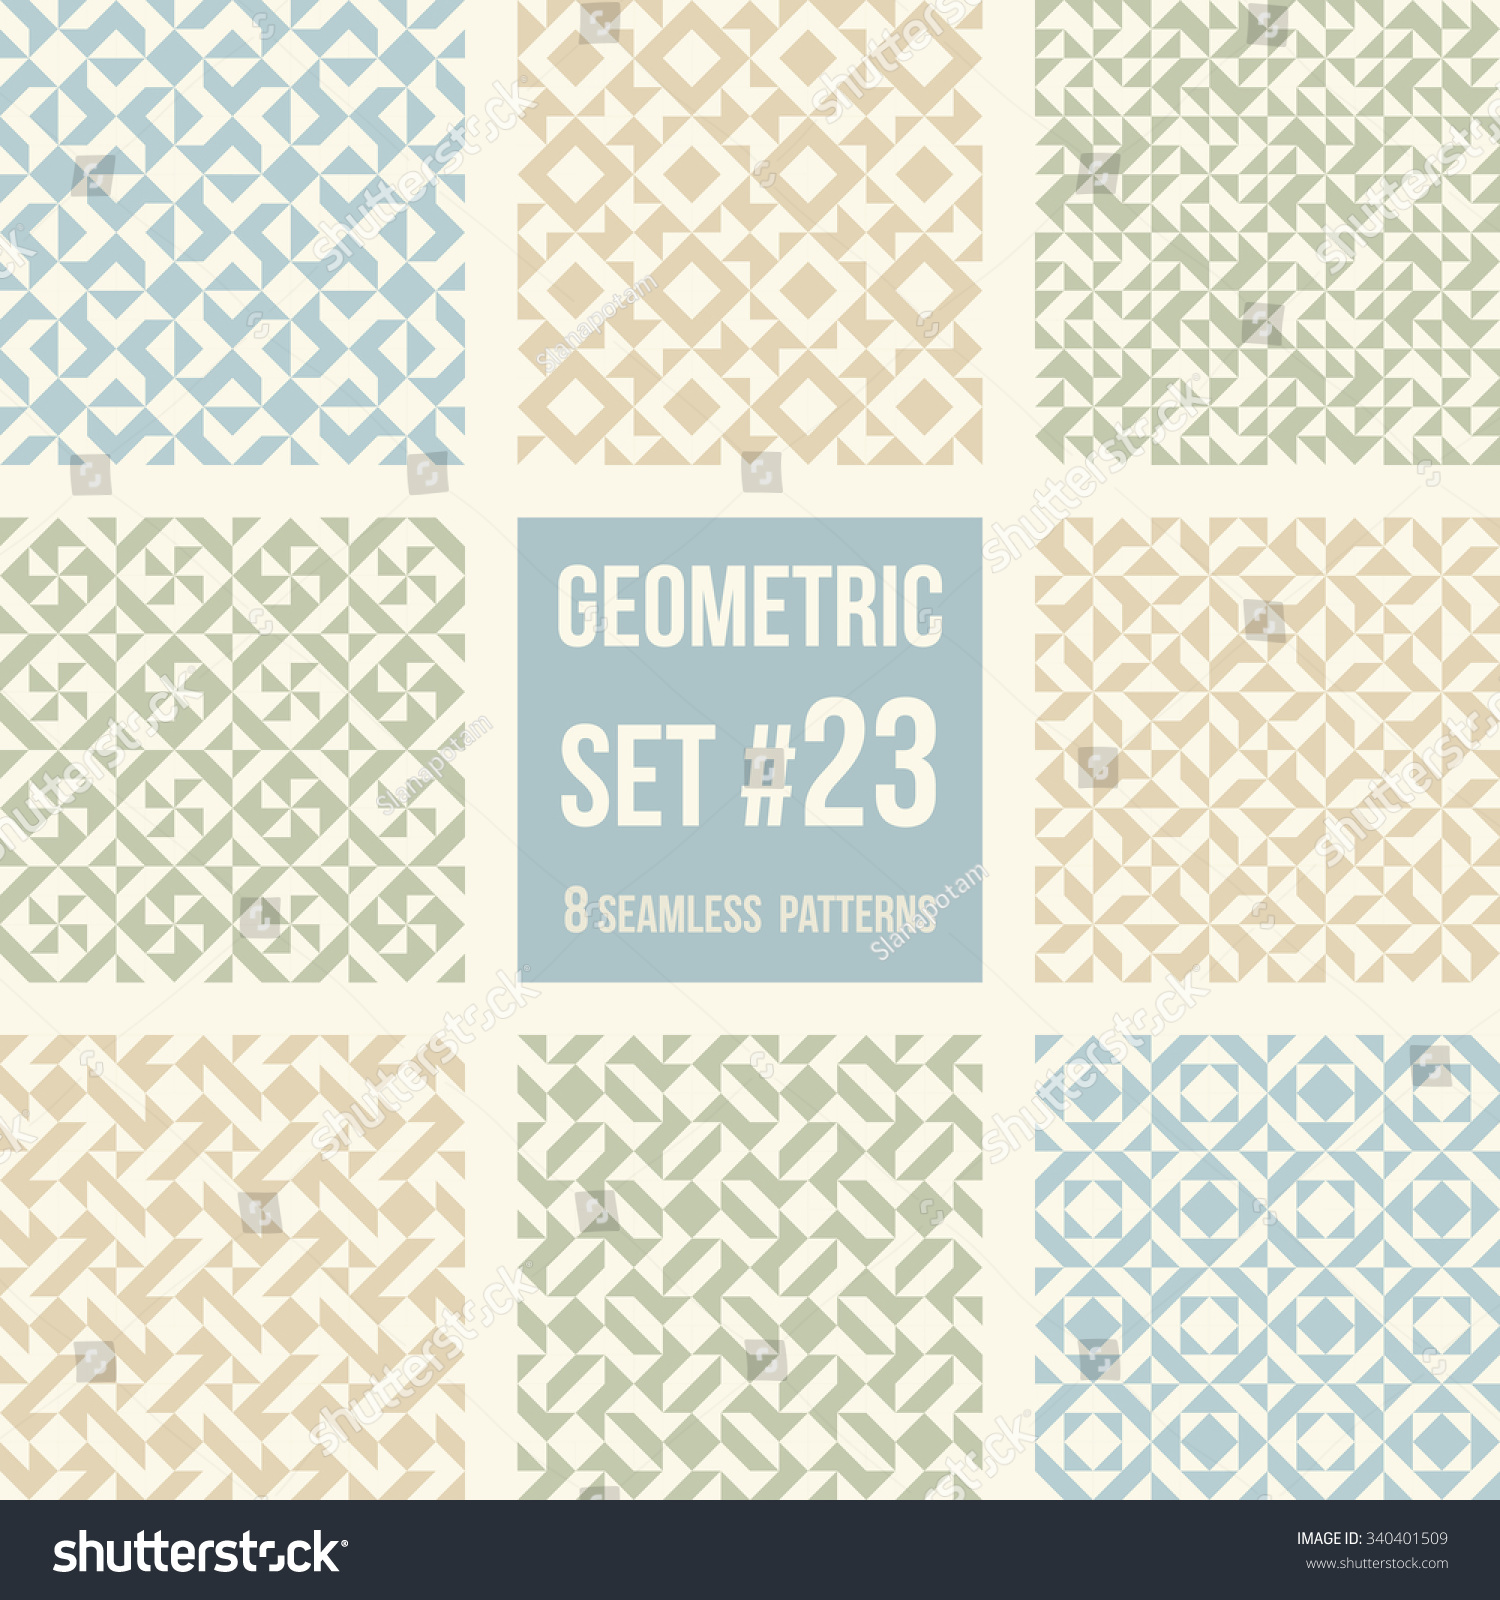 Easy Geometric Patterns Amazing Design